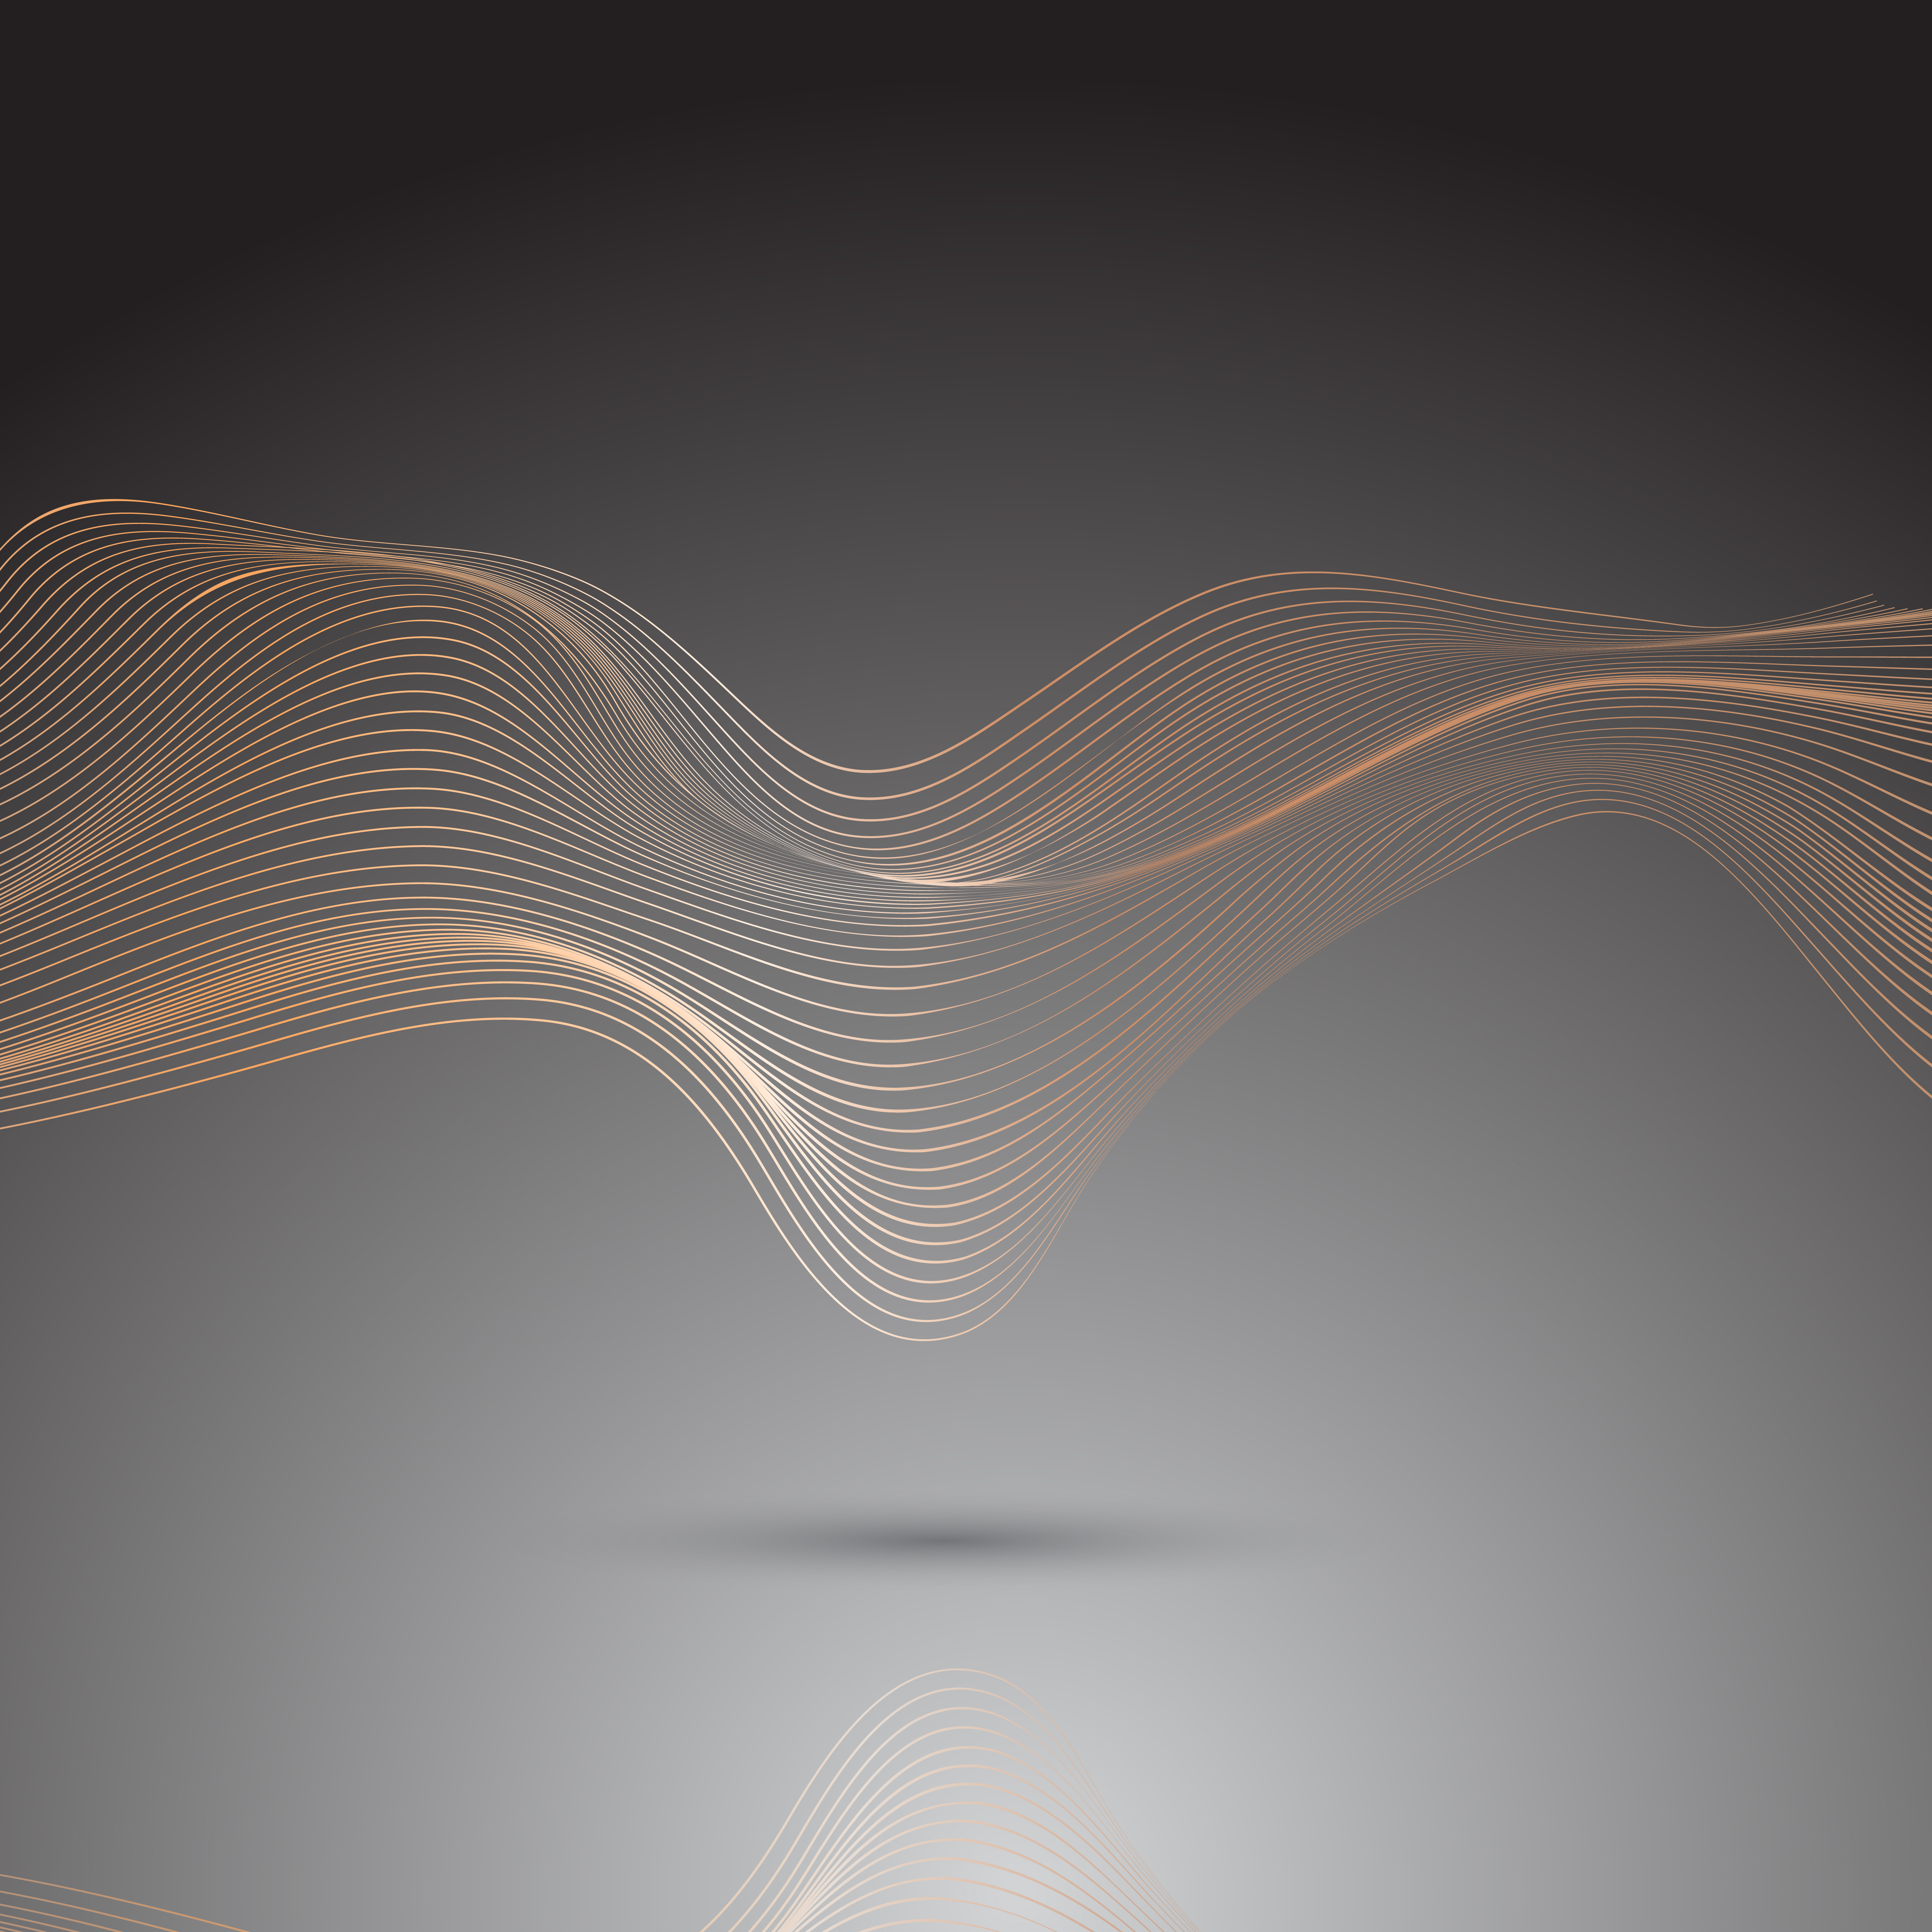 Abstract Background Of Flowing Lines Download Free